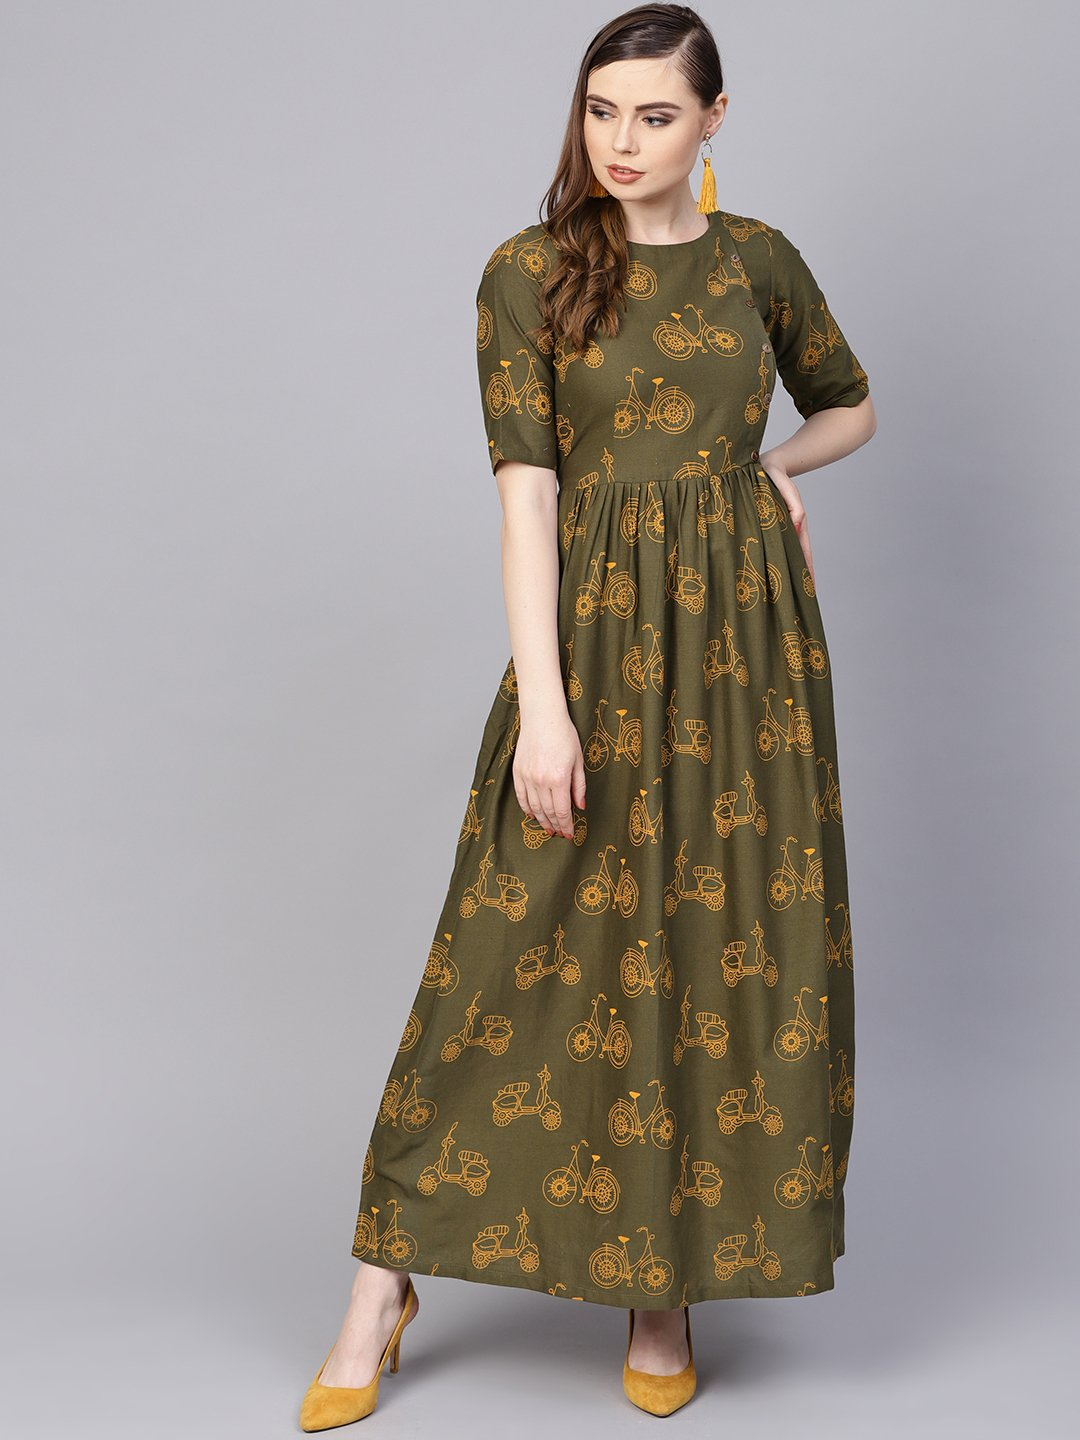 Military Green printed Maxi Dress with Side Shoulder Placket with Half sleeves